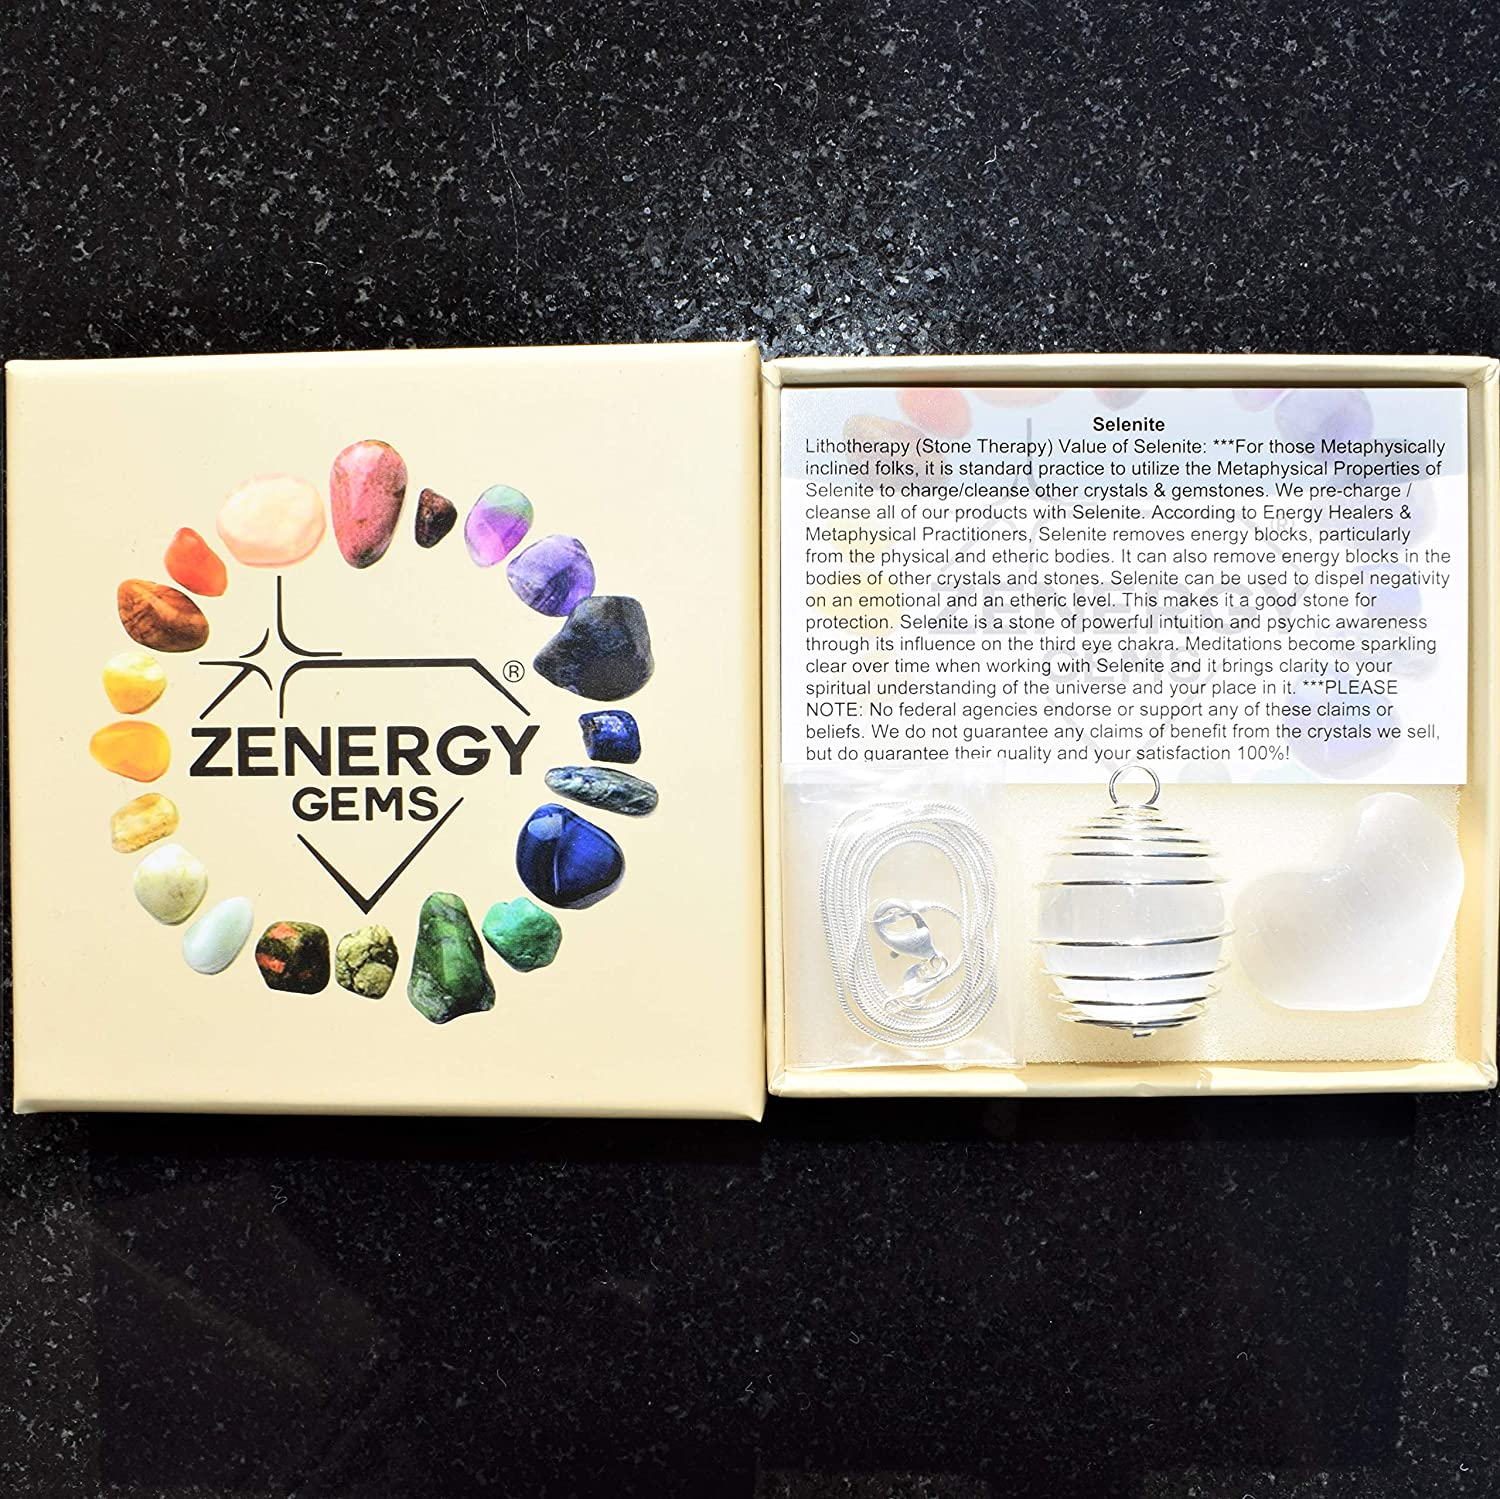 Zenergy Gems Perfect Pendant Charged Polished Moroccan Selenite Crystal Pendant 20 Silver Chain Selenite Charging Heart Included Healing Energy - Negative Energy Absorber